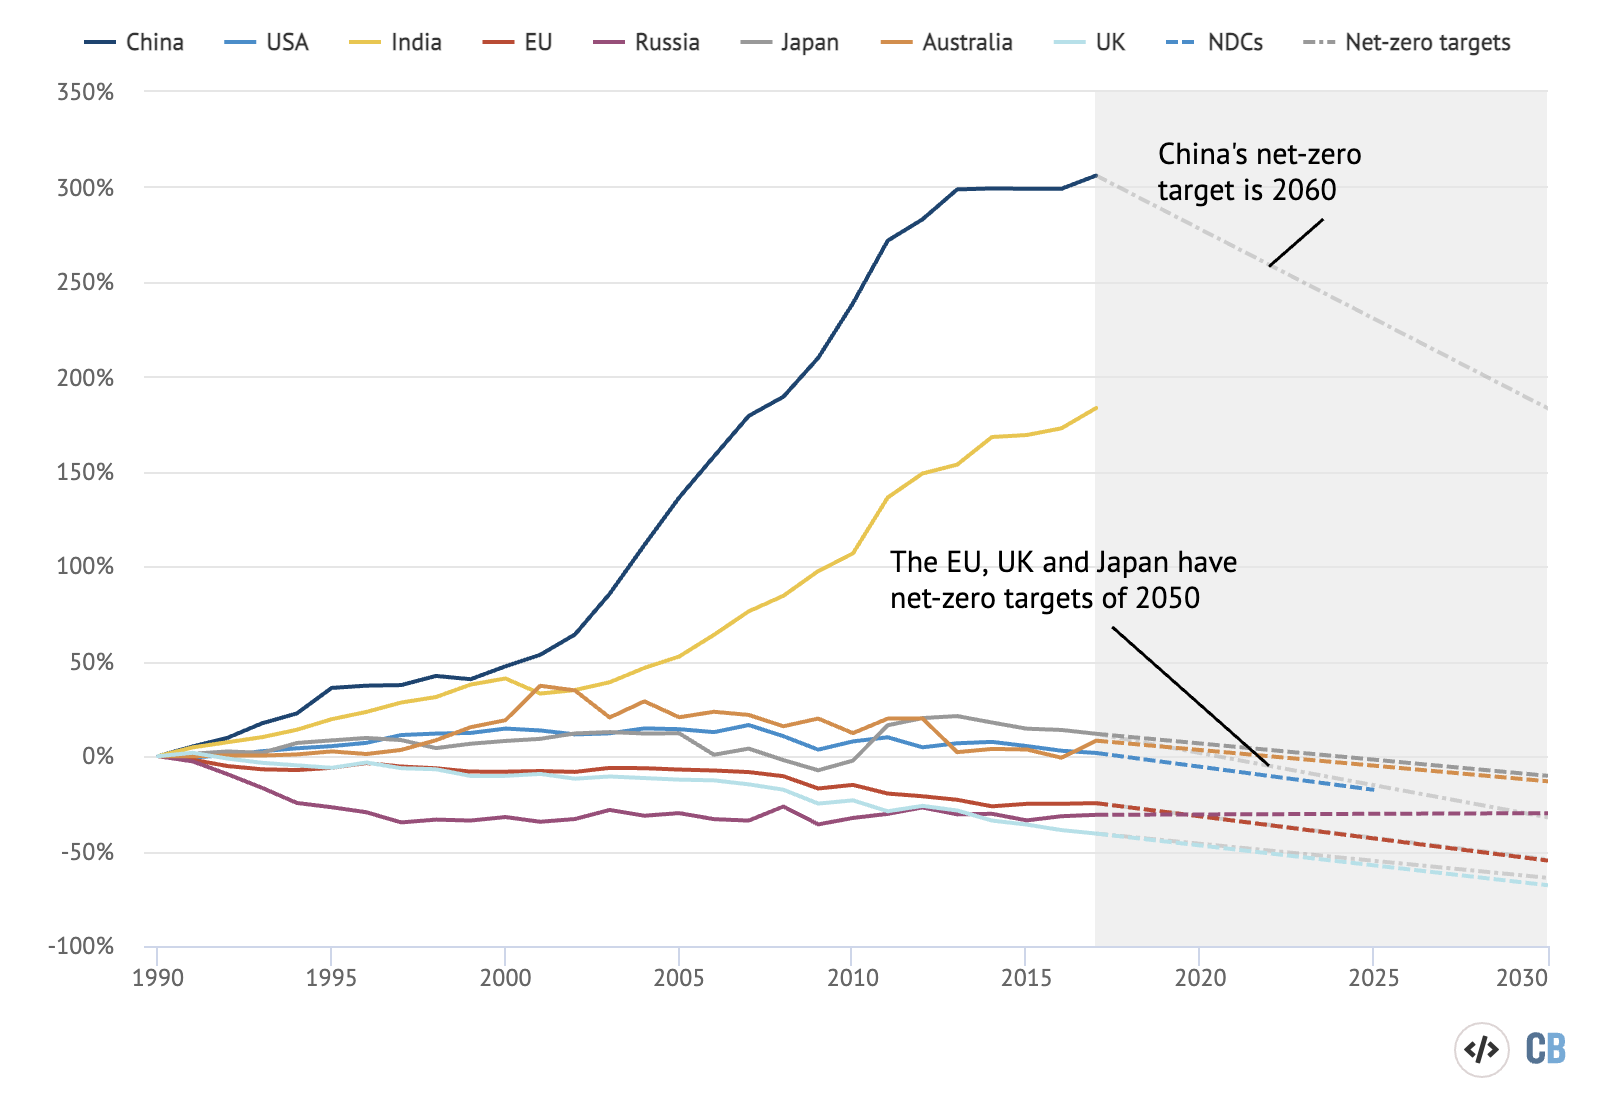 Major economies' emissions since 1990, with routes to NDCs and net-zero